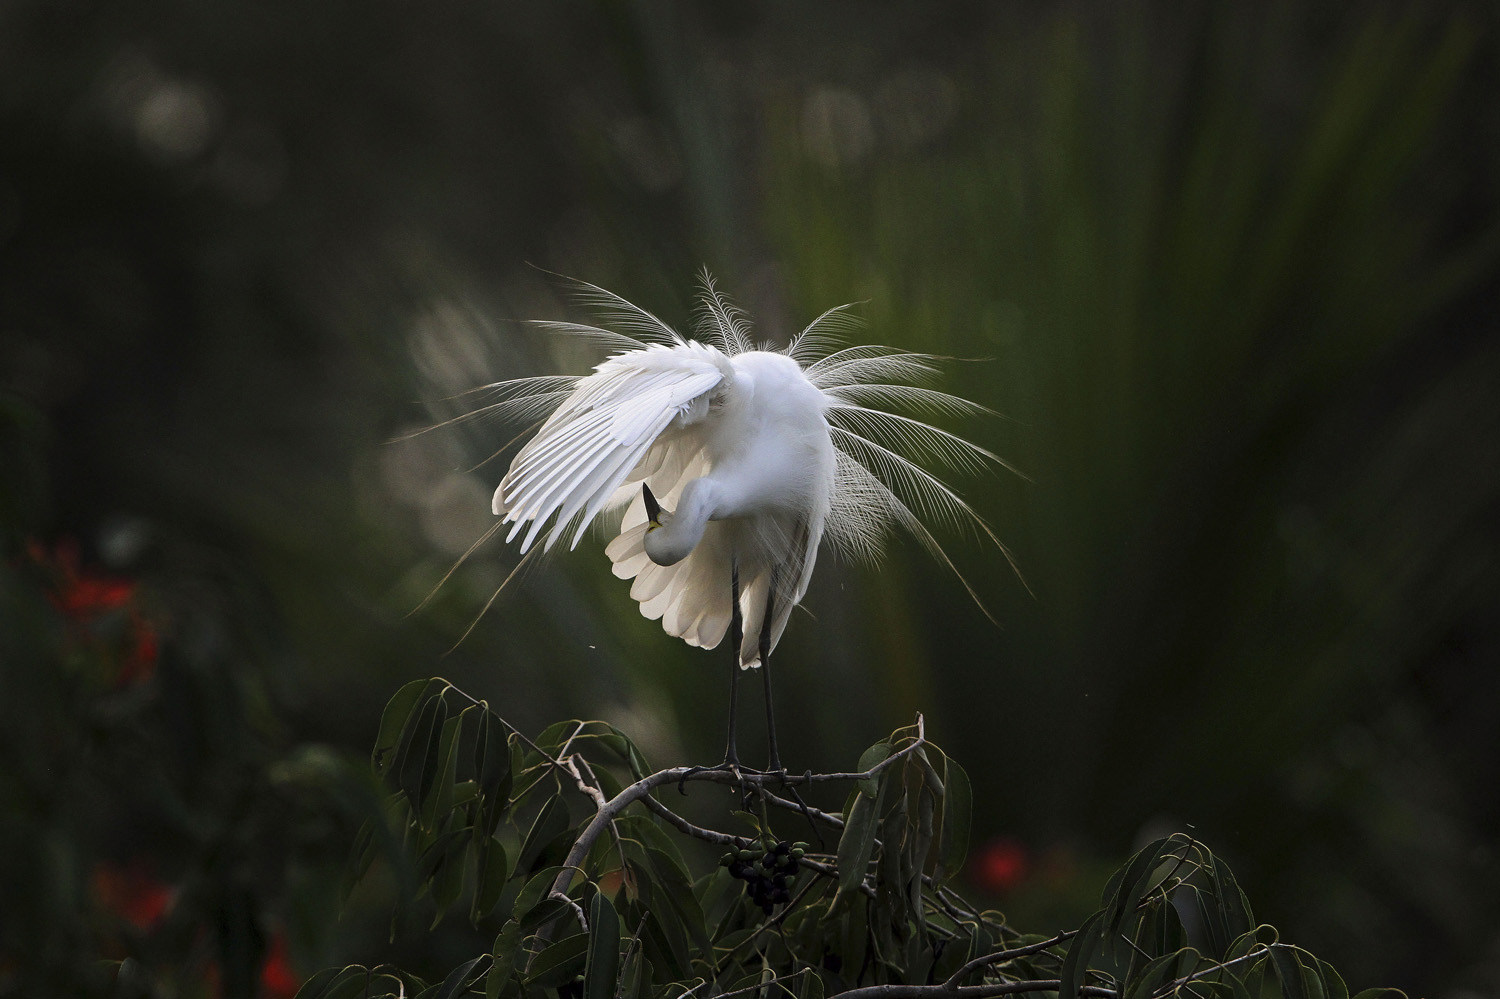 An egret preens itself as it stands on a branch along the River Brahmaputra on the eve of World Environment Day in Gauhati, India on  June 4, 2014.